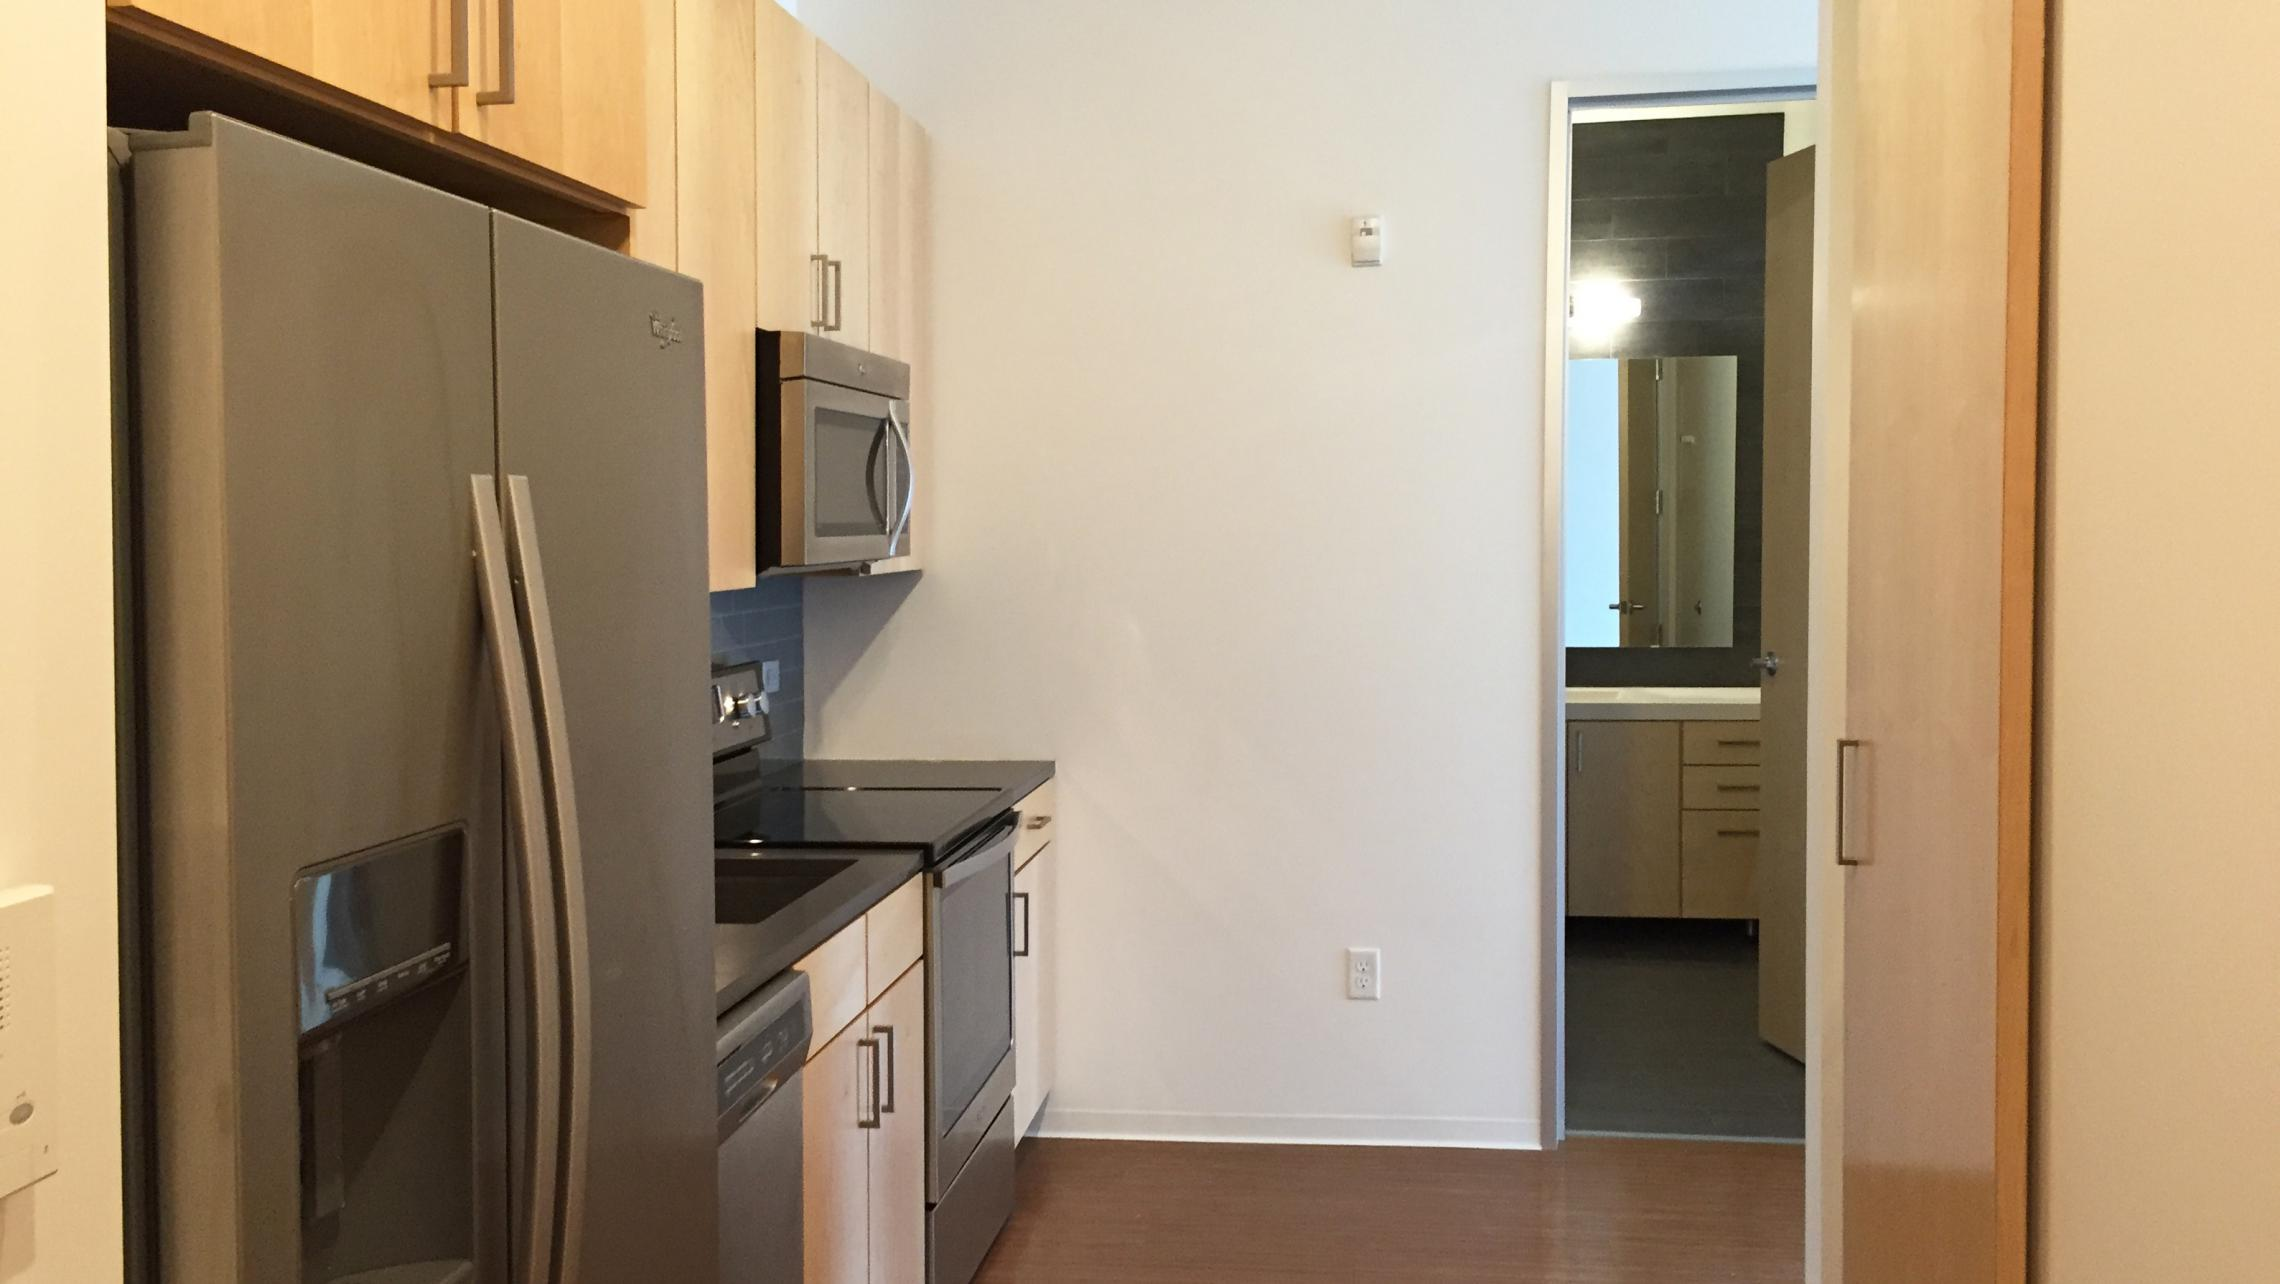 ULI Seven27 Apartment 229 - Kitchen and Bathroom